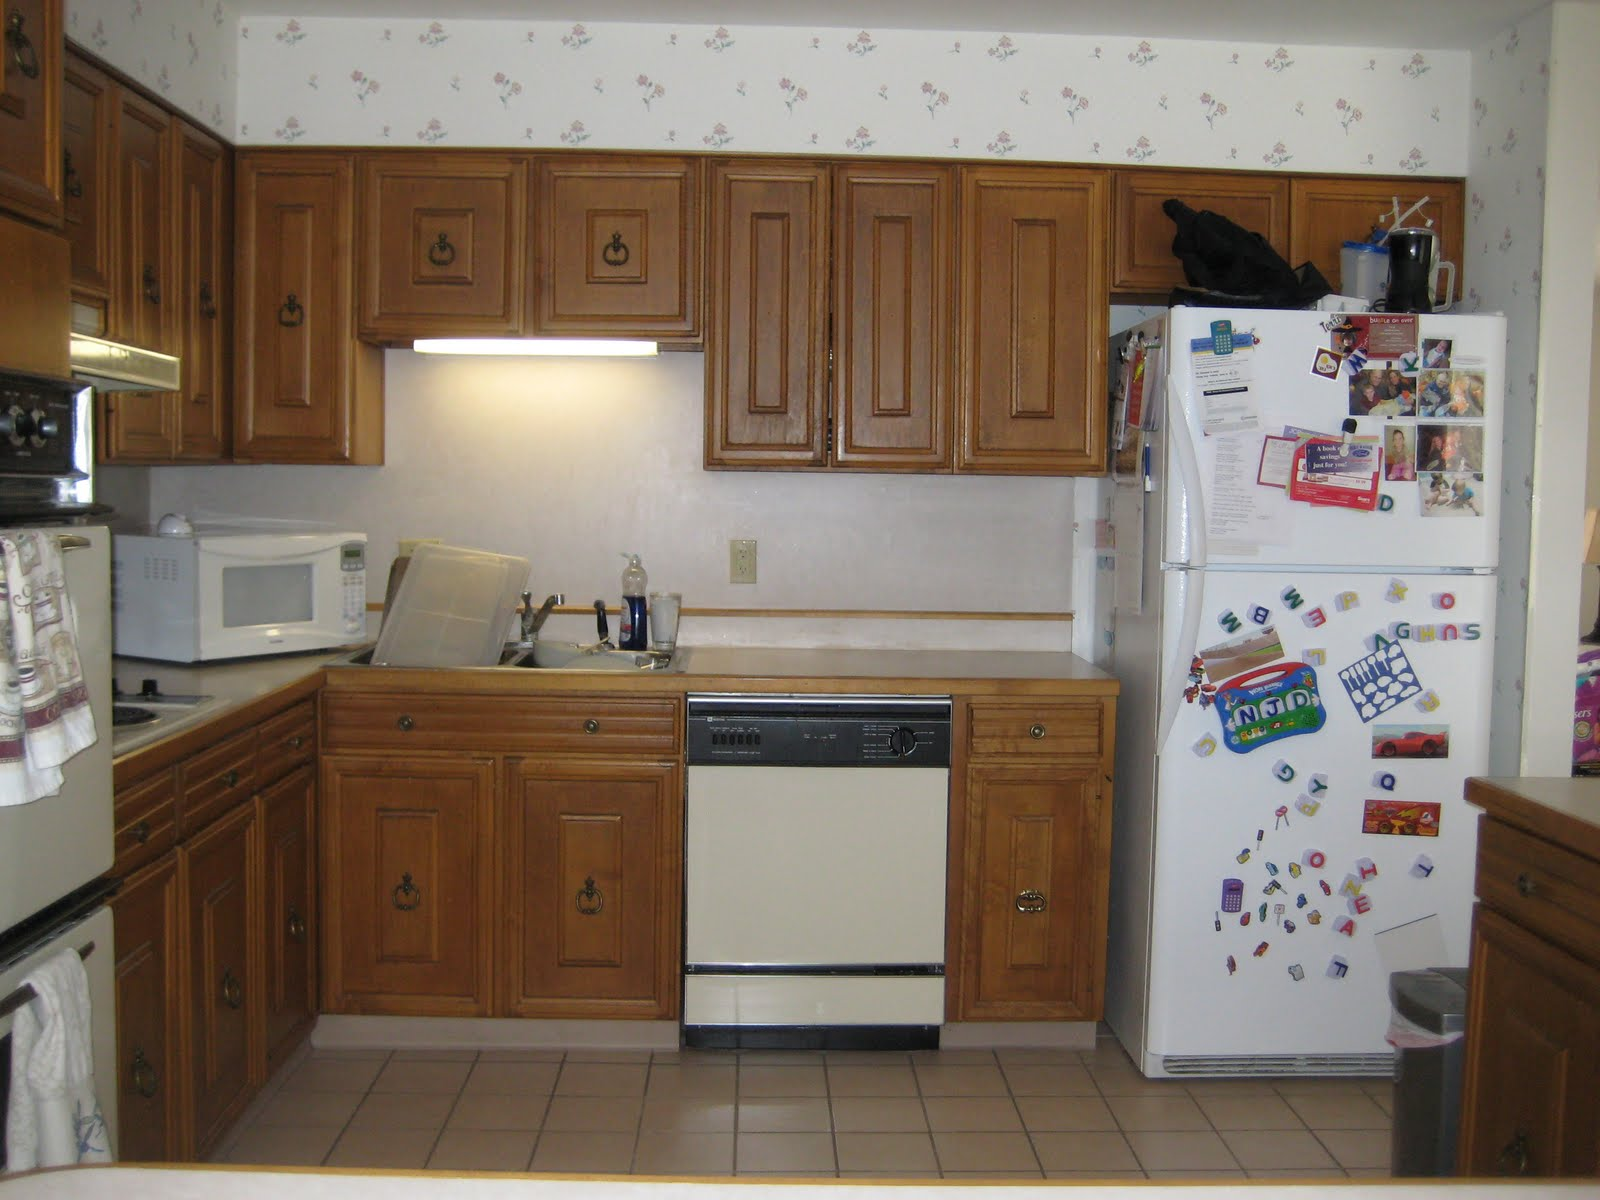 Obssesed with design the original kitchen circa 1967 with 80 39 s upgrades for Upgraded kitchen ideas